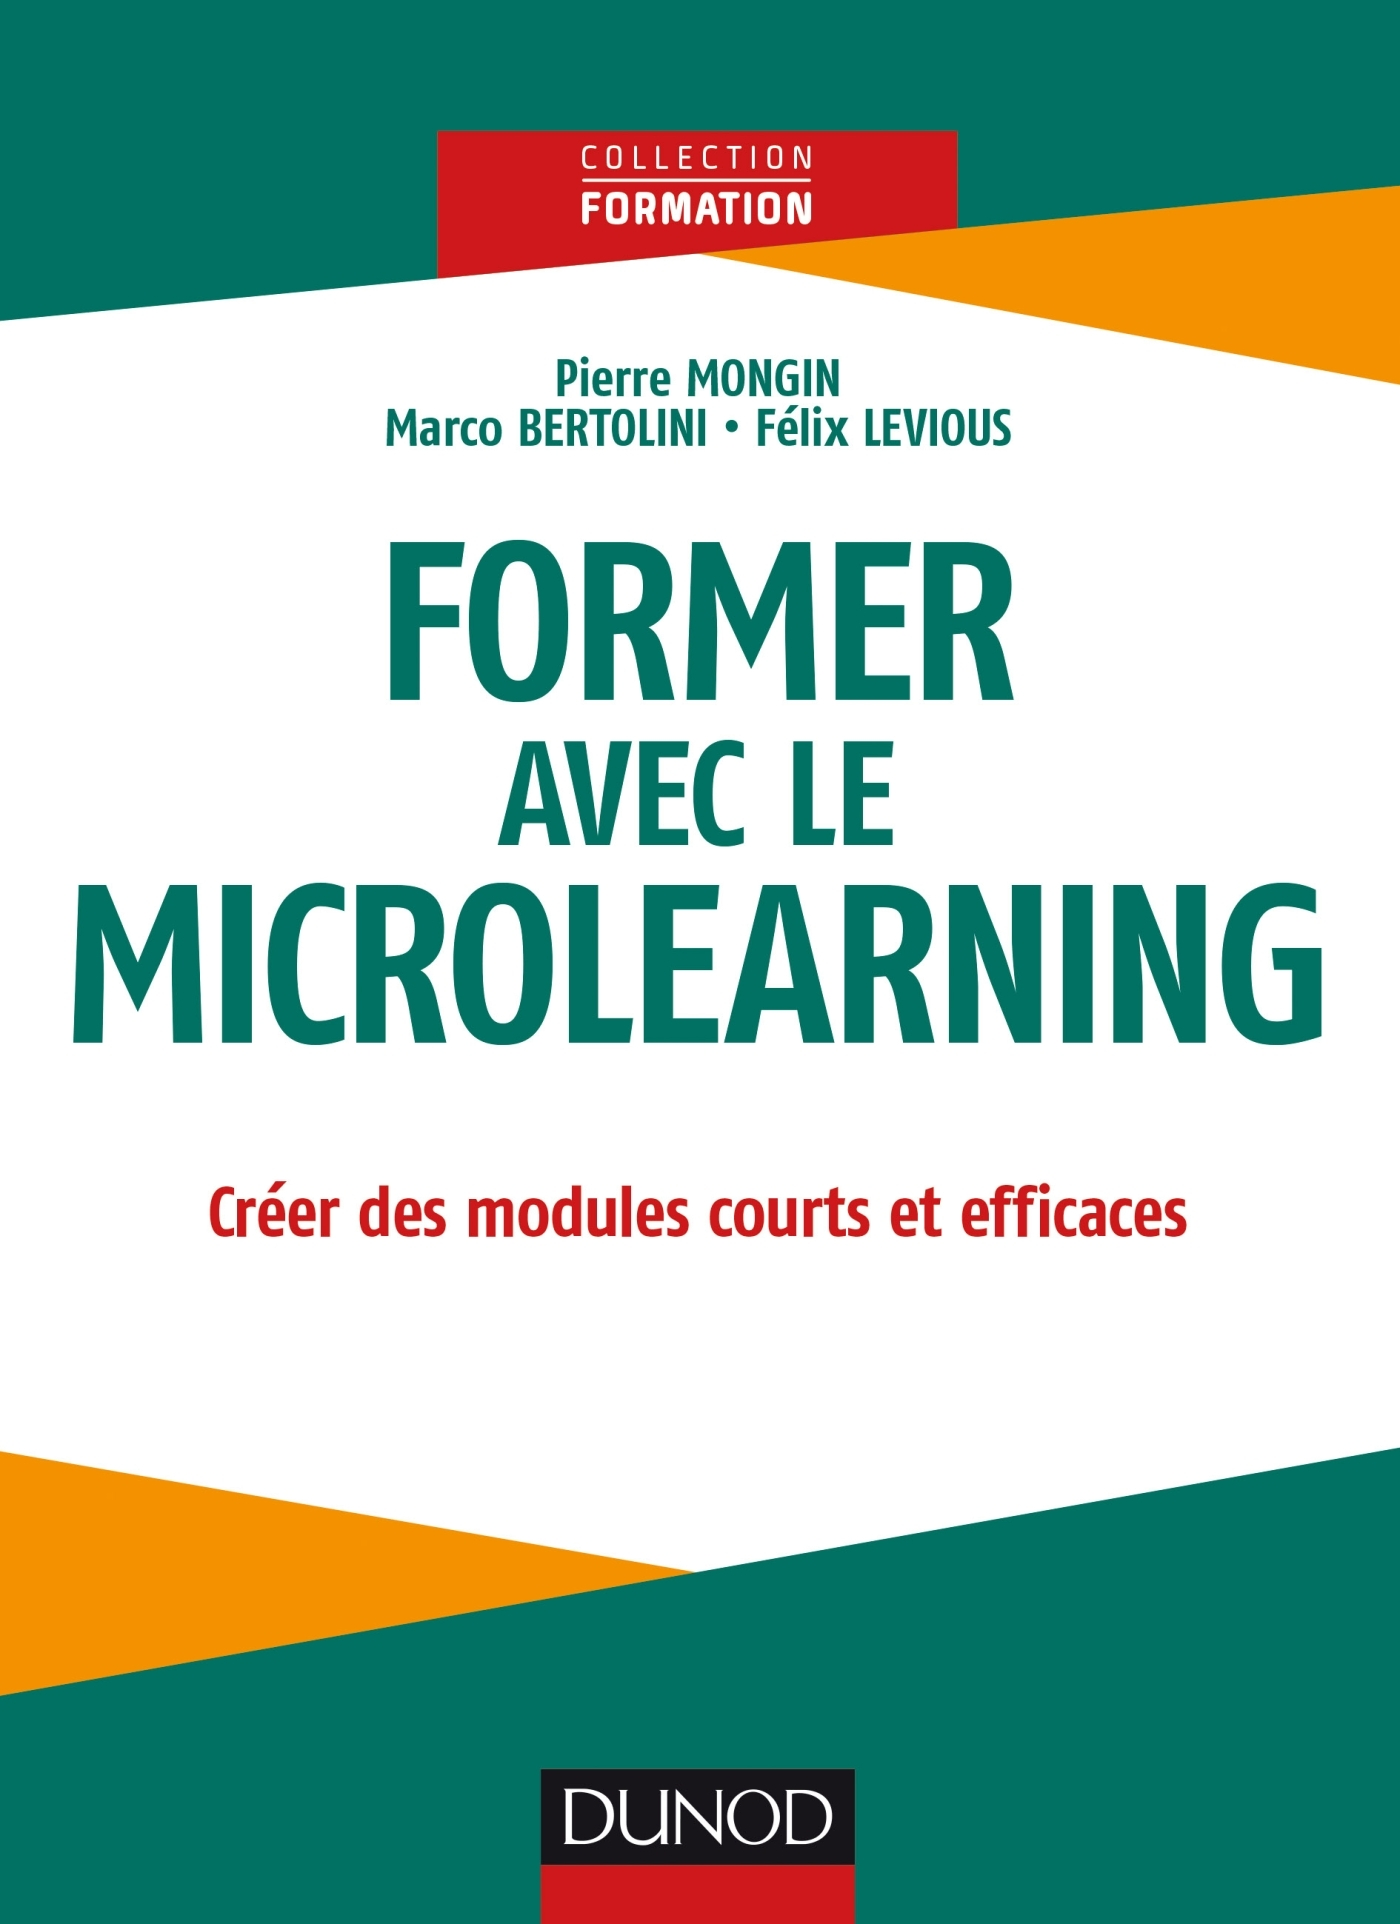 FORMER AVEC LE MICROLEARNING - CREER DES MODULES COURTS ET EFFICACES